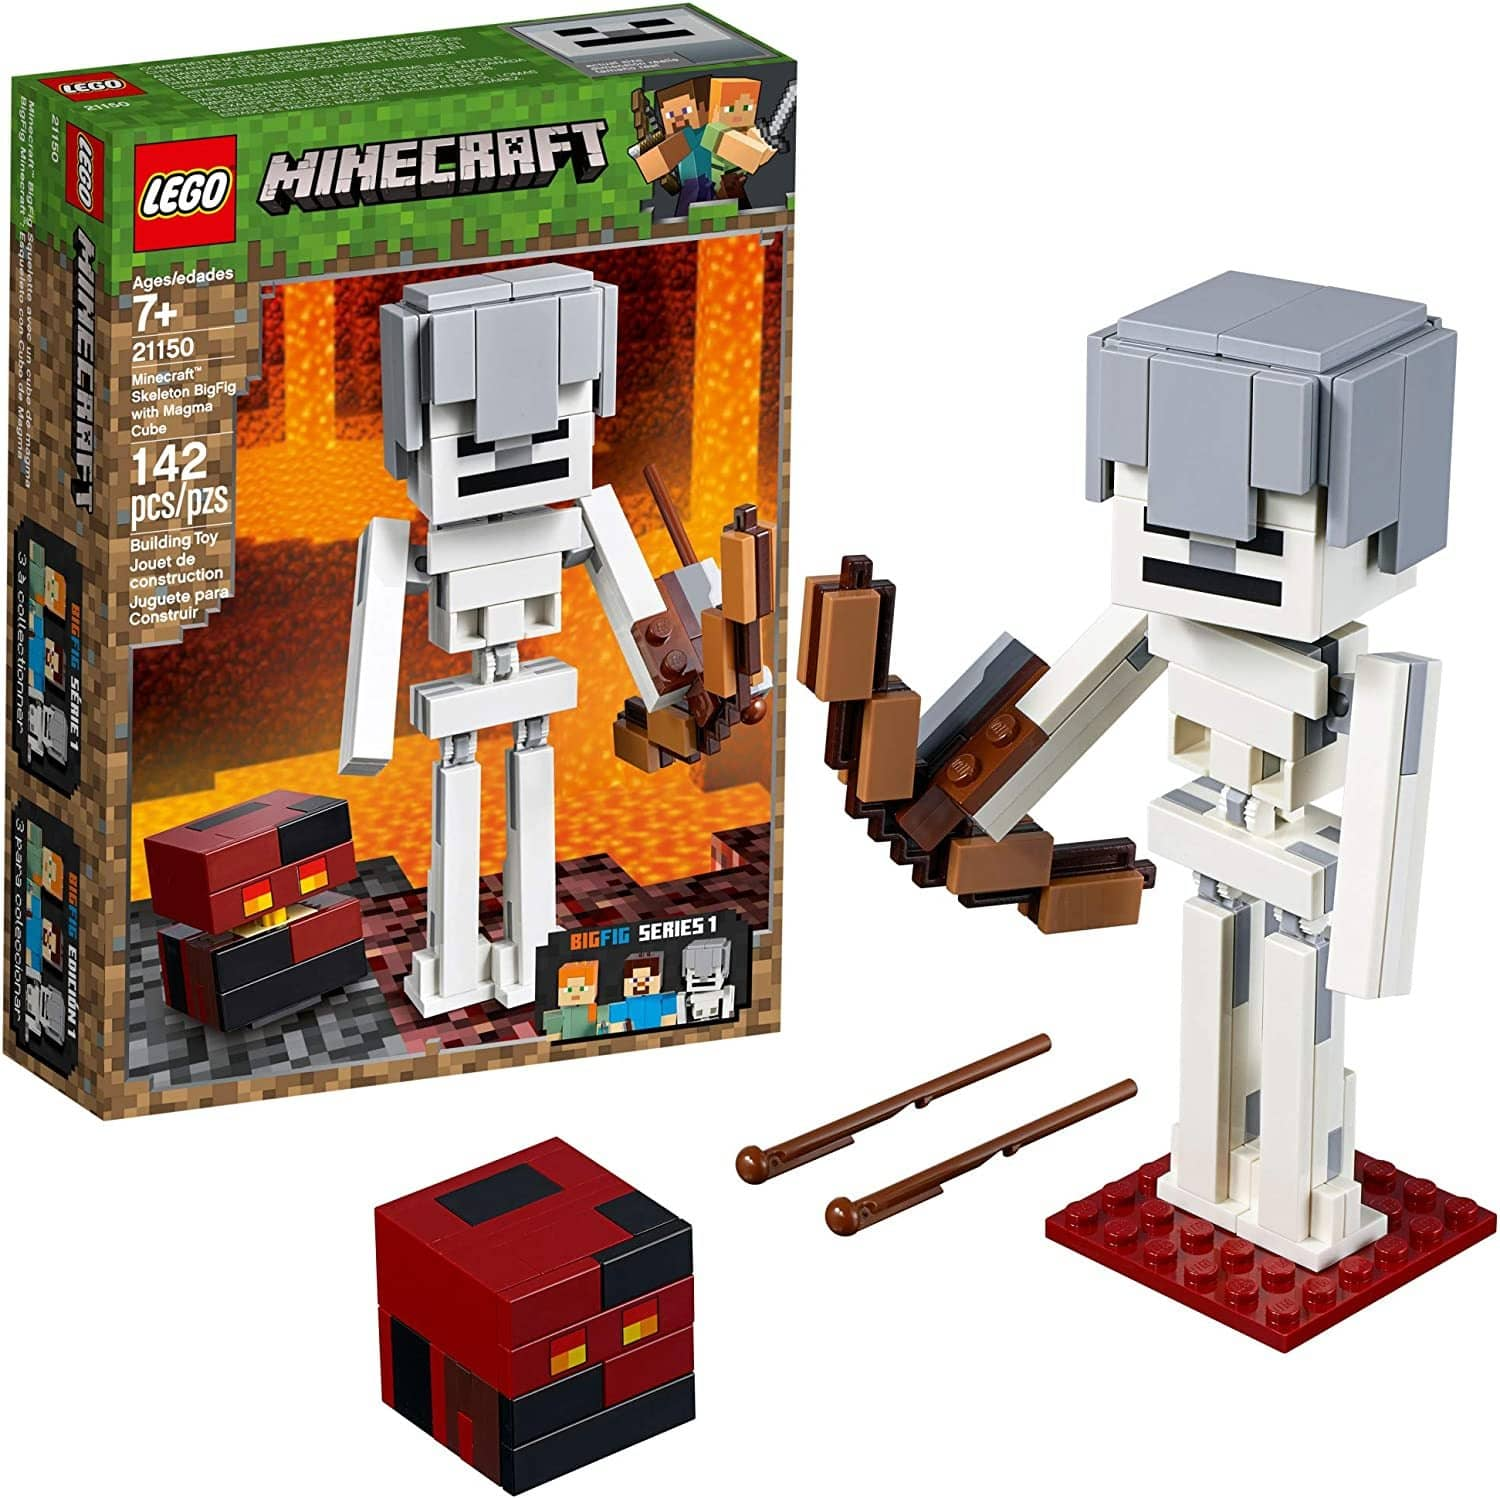 LEGO 21150: Minecraft: Skeleton Bigfig With Magma Cube (142 Pieces)-Kidding Around NYC